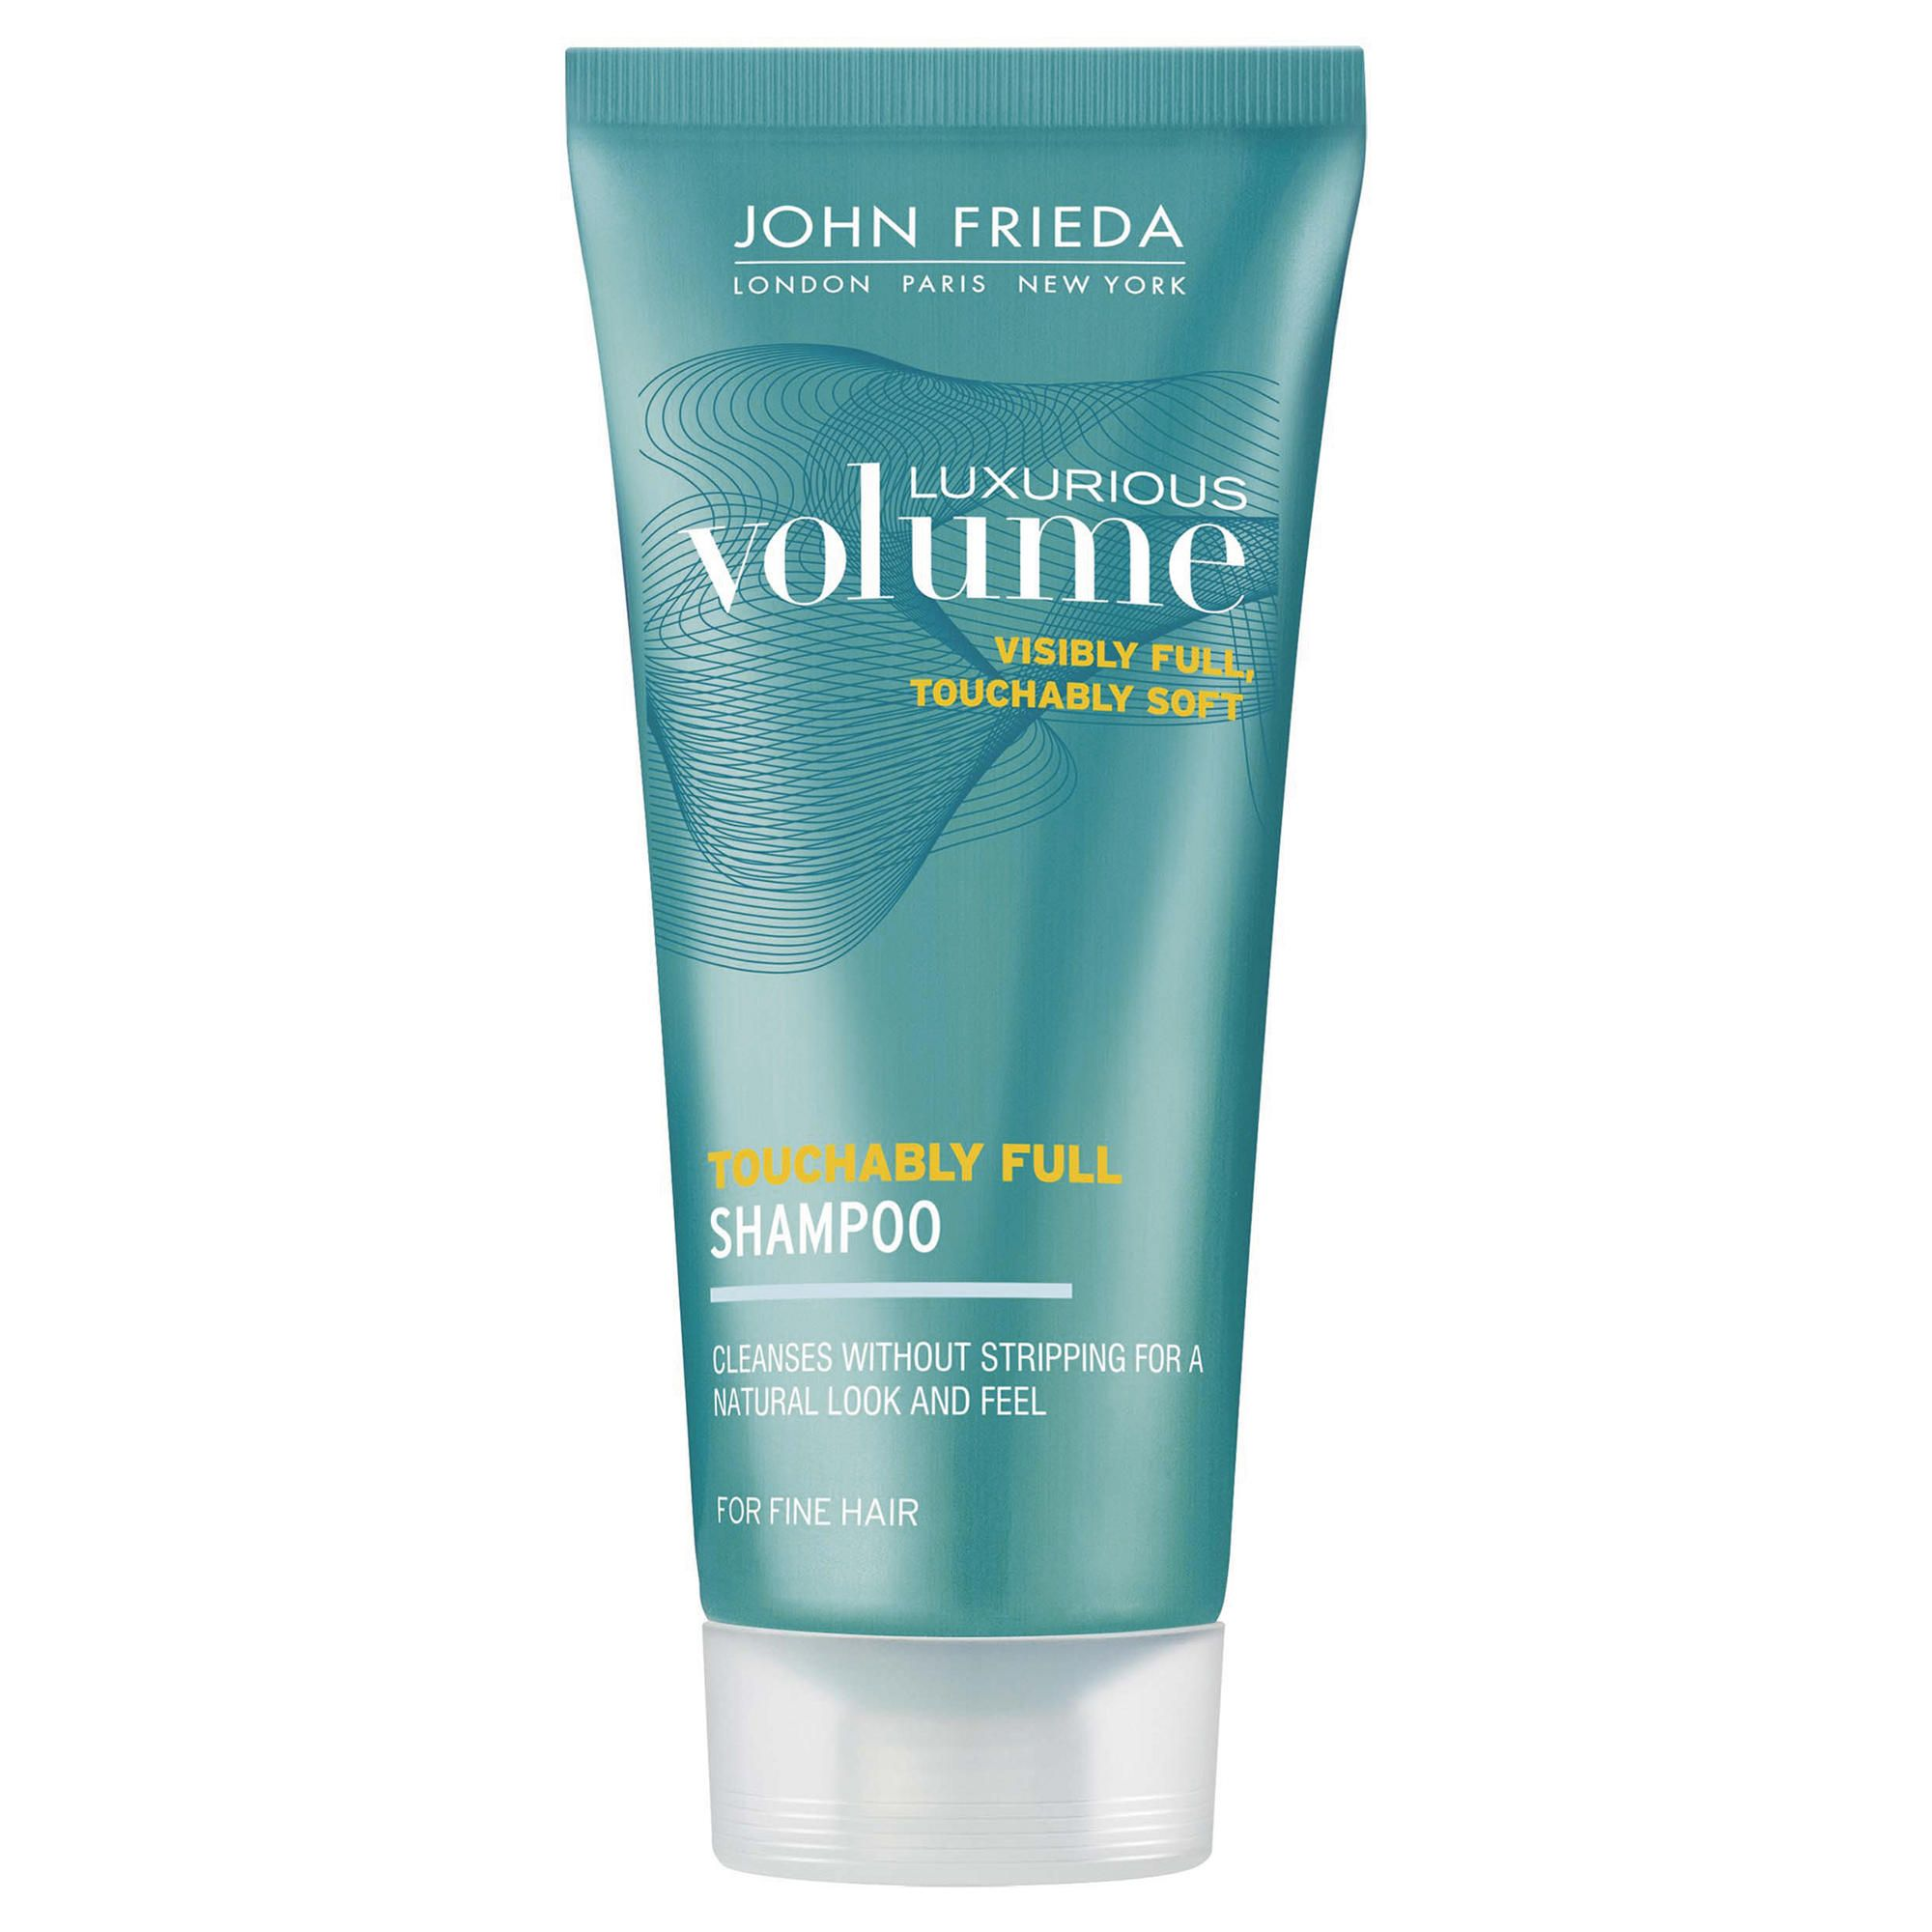 John Frieda Luxurious Volume Thickening Shampoo 250ml